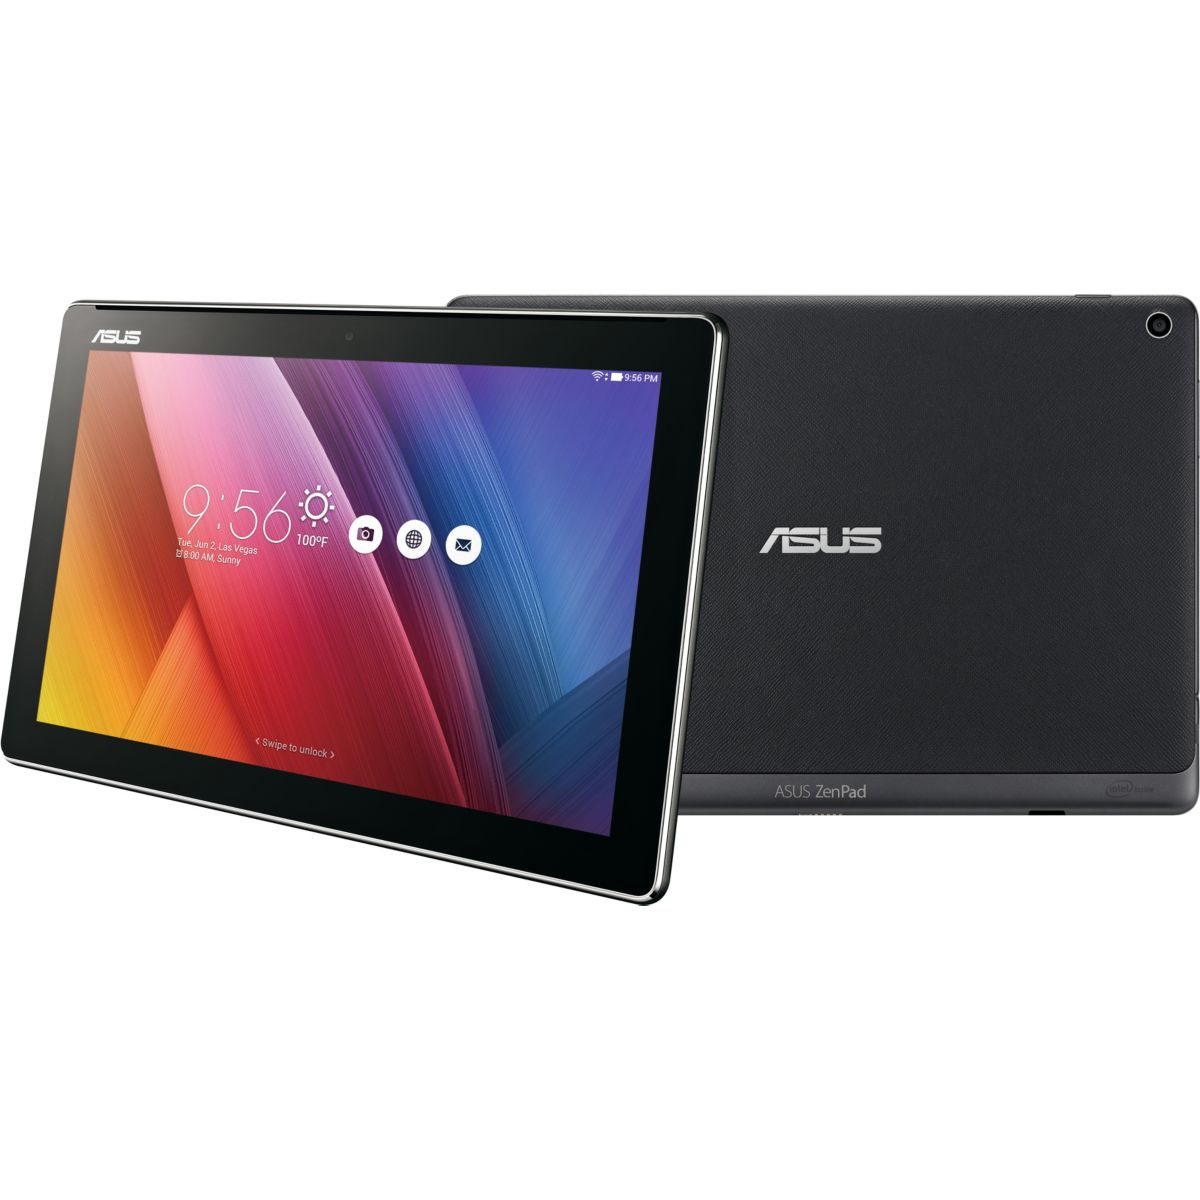 asus z310m 16 go tablette tactile 10 1 sous android 6 0 comparer avec. Black Bedroom Furniture Sets. Home Design Ideas